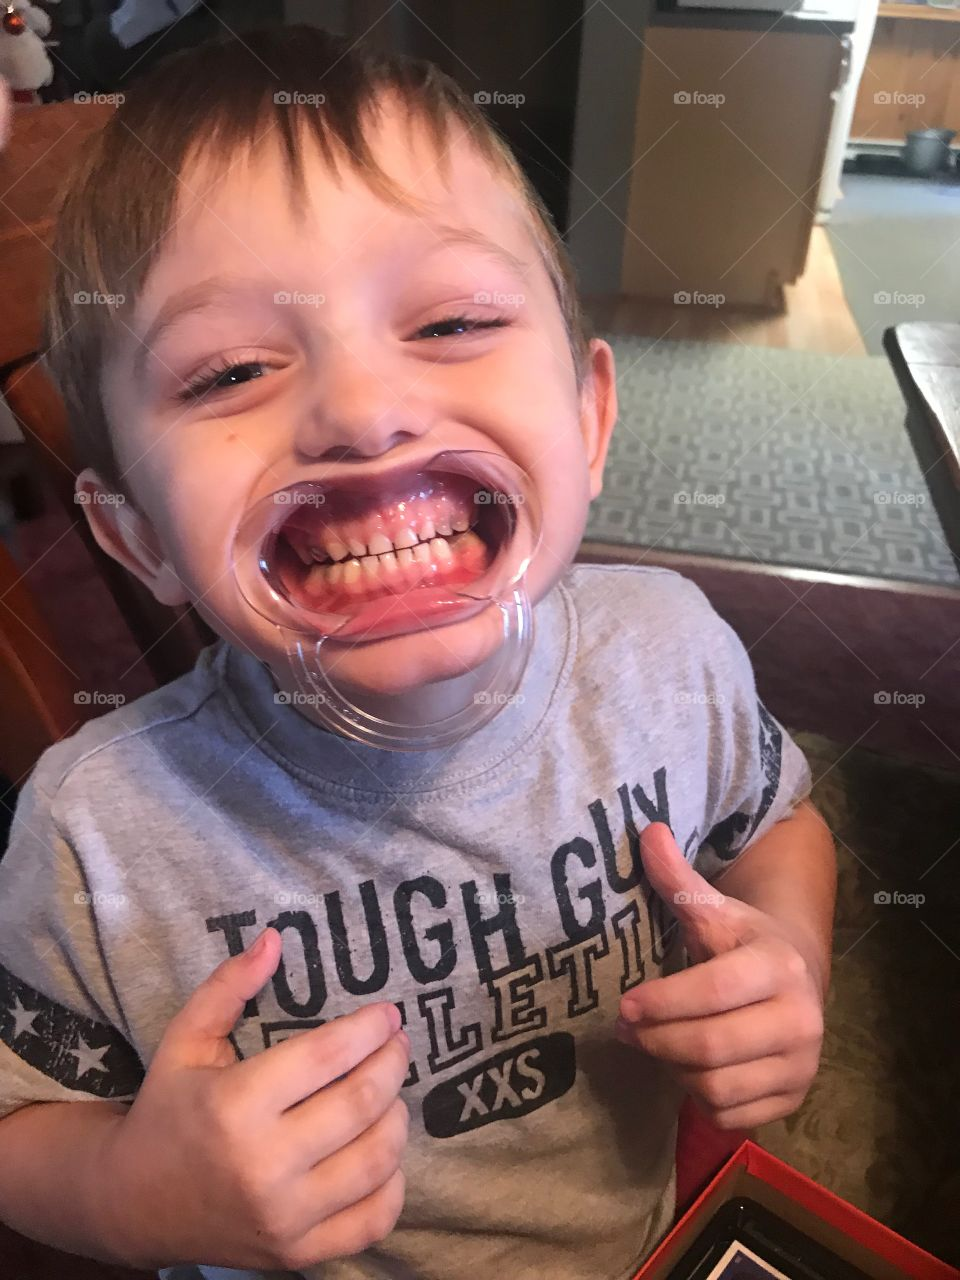 A wide mouthed cute little boy playing a silly game that makes us giggle.